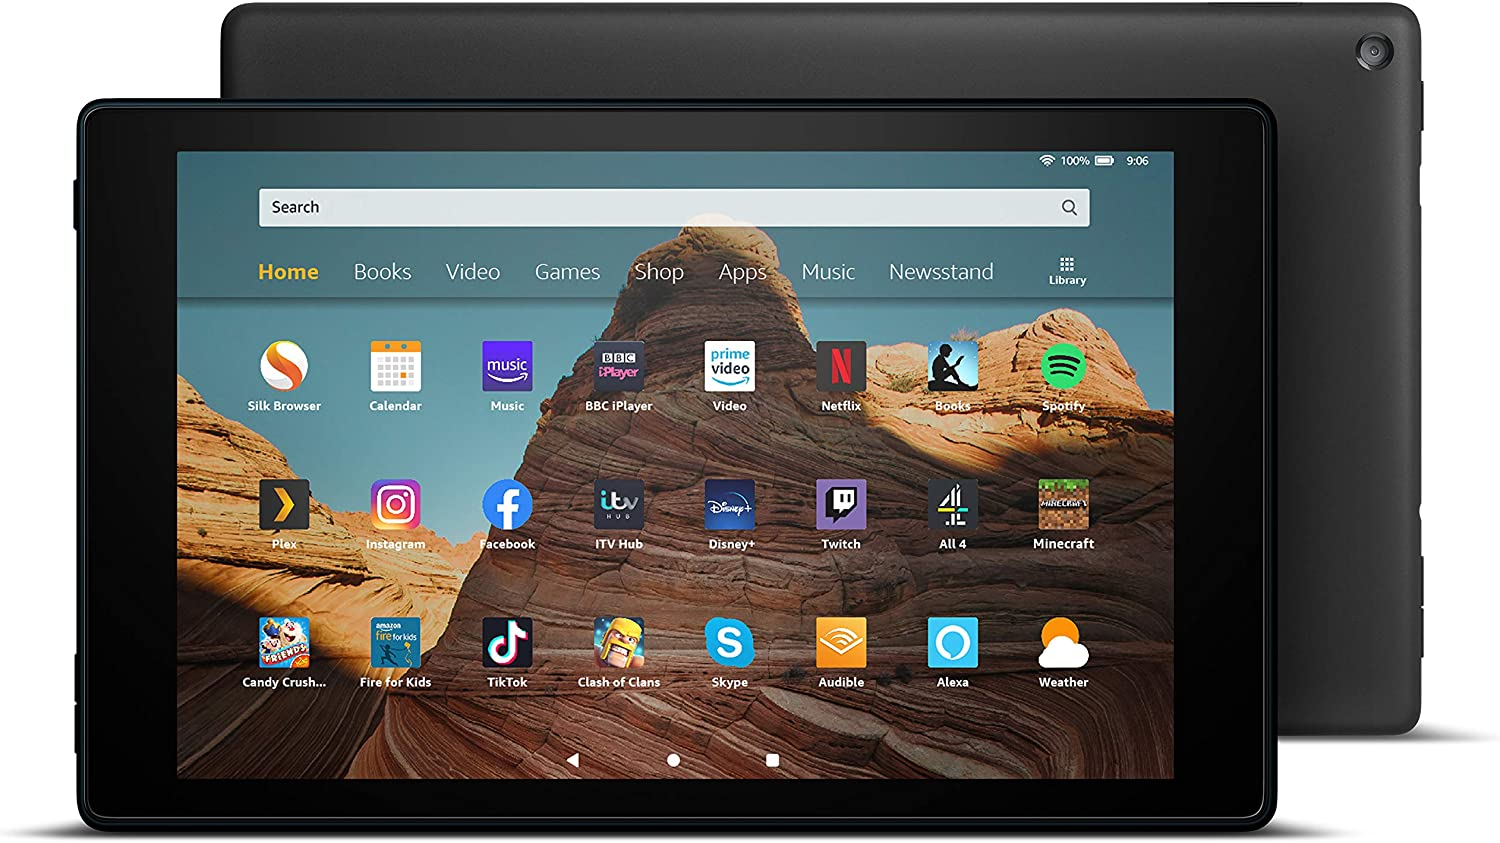 Fire HD 10 Tablet | 10.1″ 1080p Full HD display, 32 GB, Black